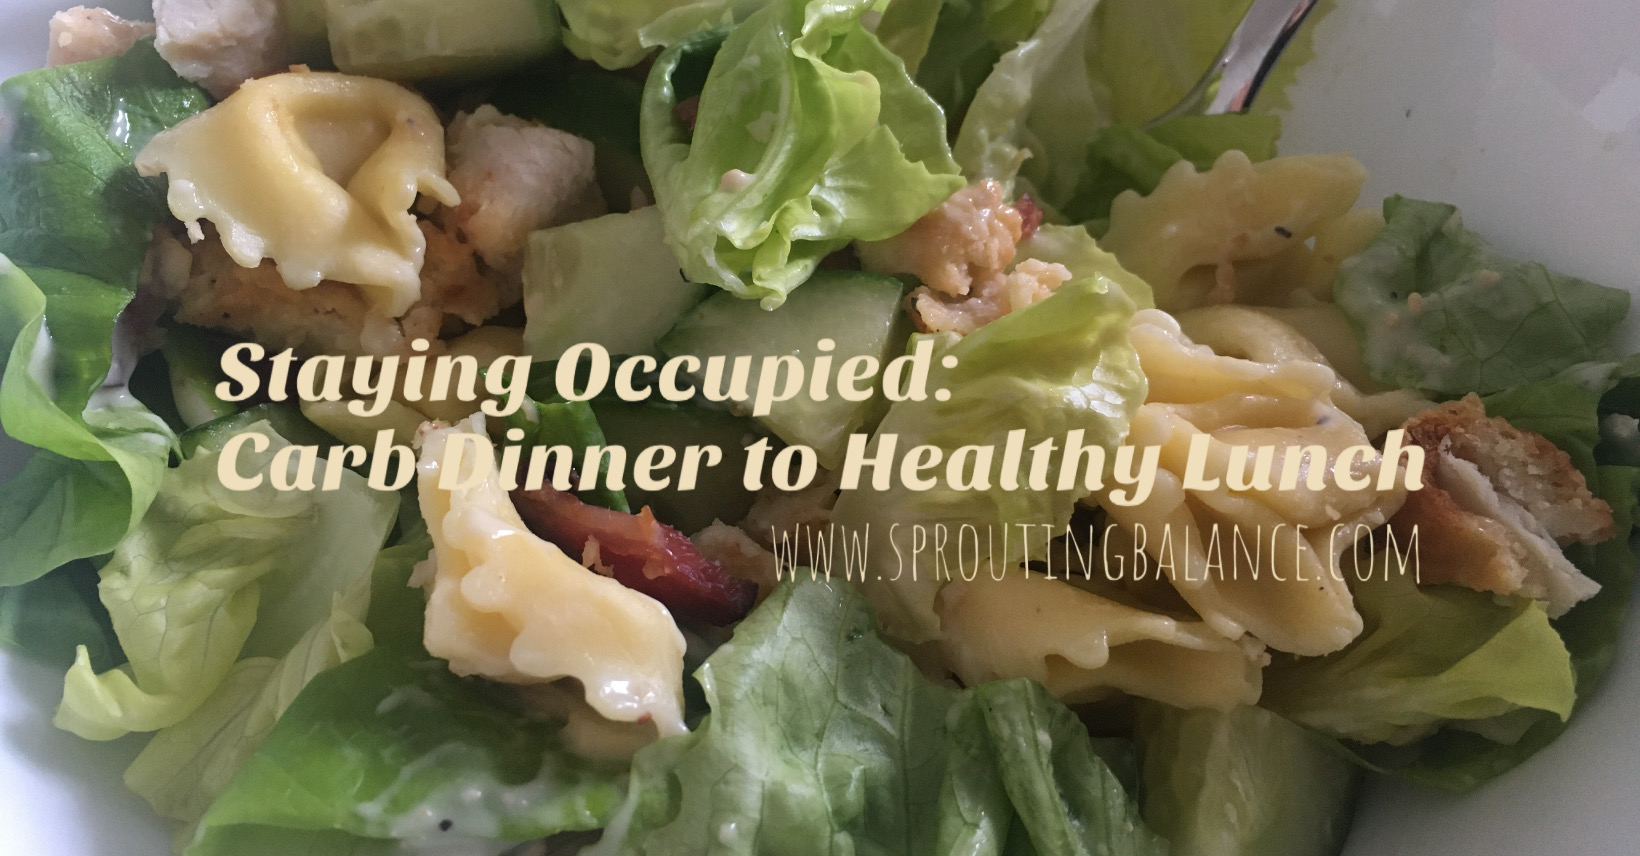 Staying Occupied: Carb Dinner to Healthy Lunch | www.sproutingbalance.com | #stayhome #socialdistancing #bepositive